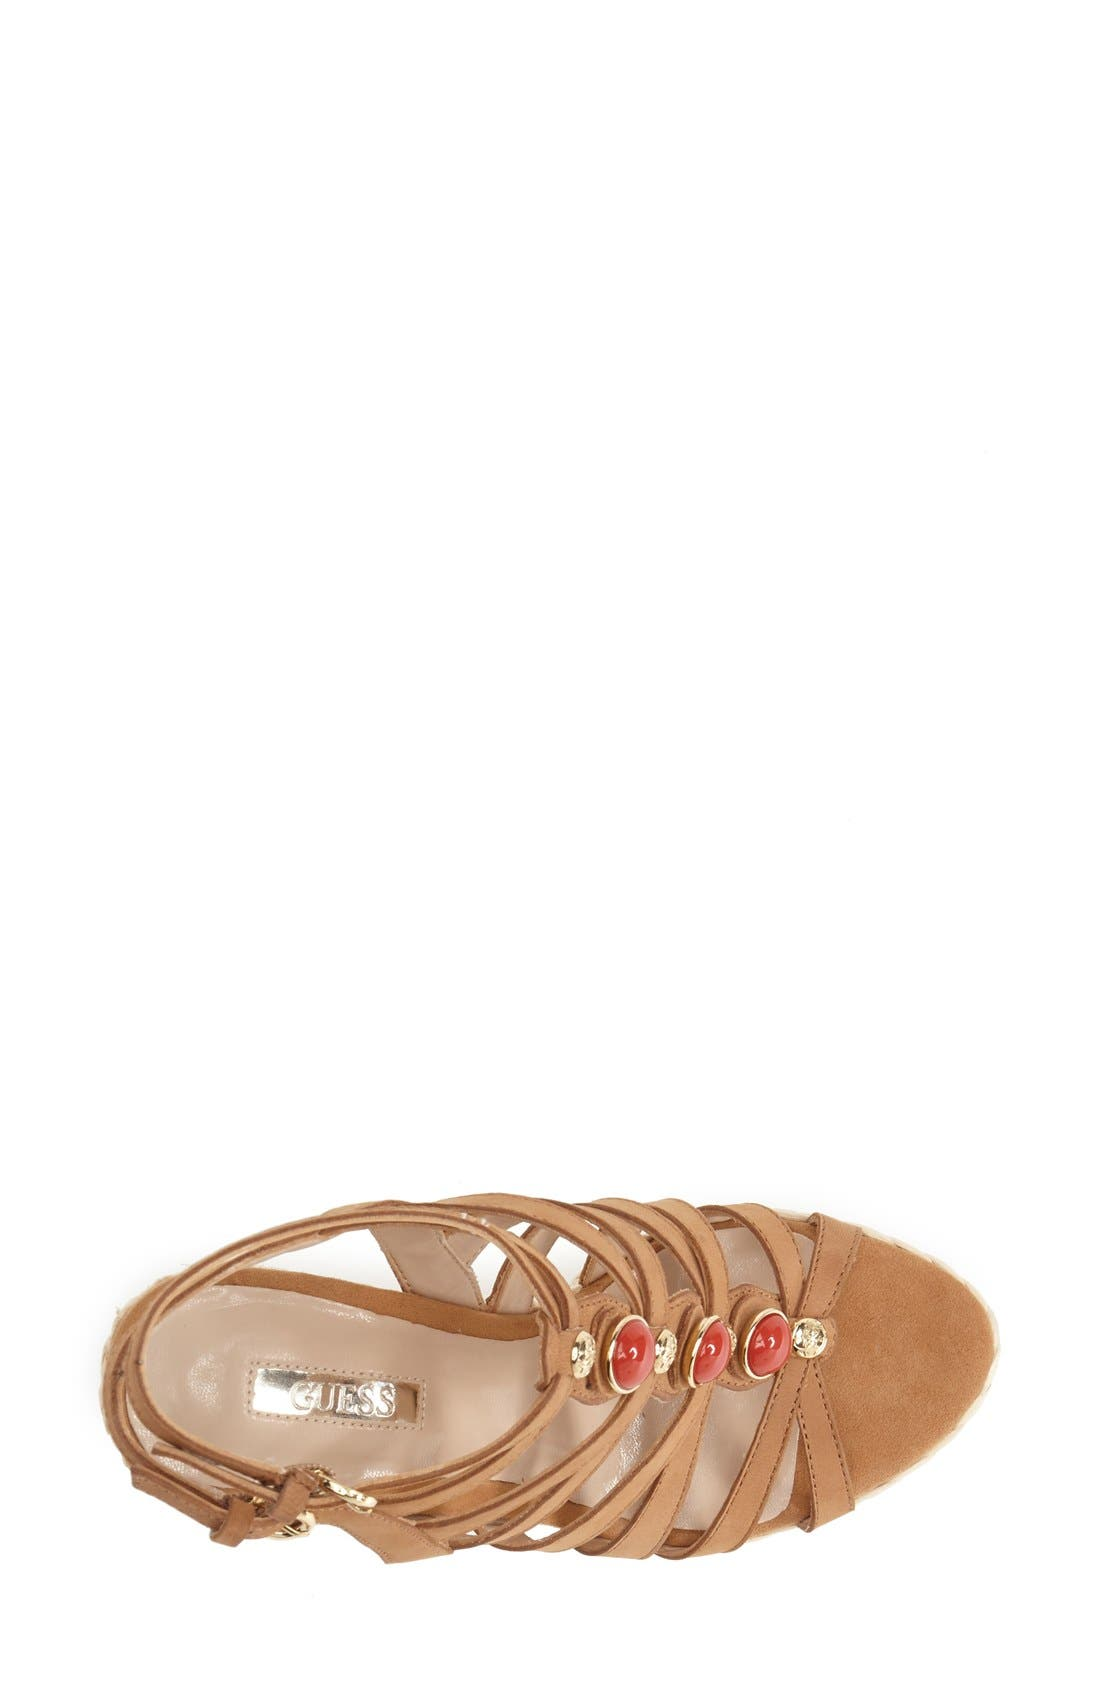 Alternate Image 3  - GUESS 'Onixx' Snake Embossed Leather Wedge Sandal (Women)